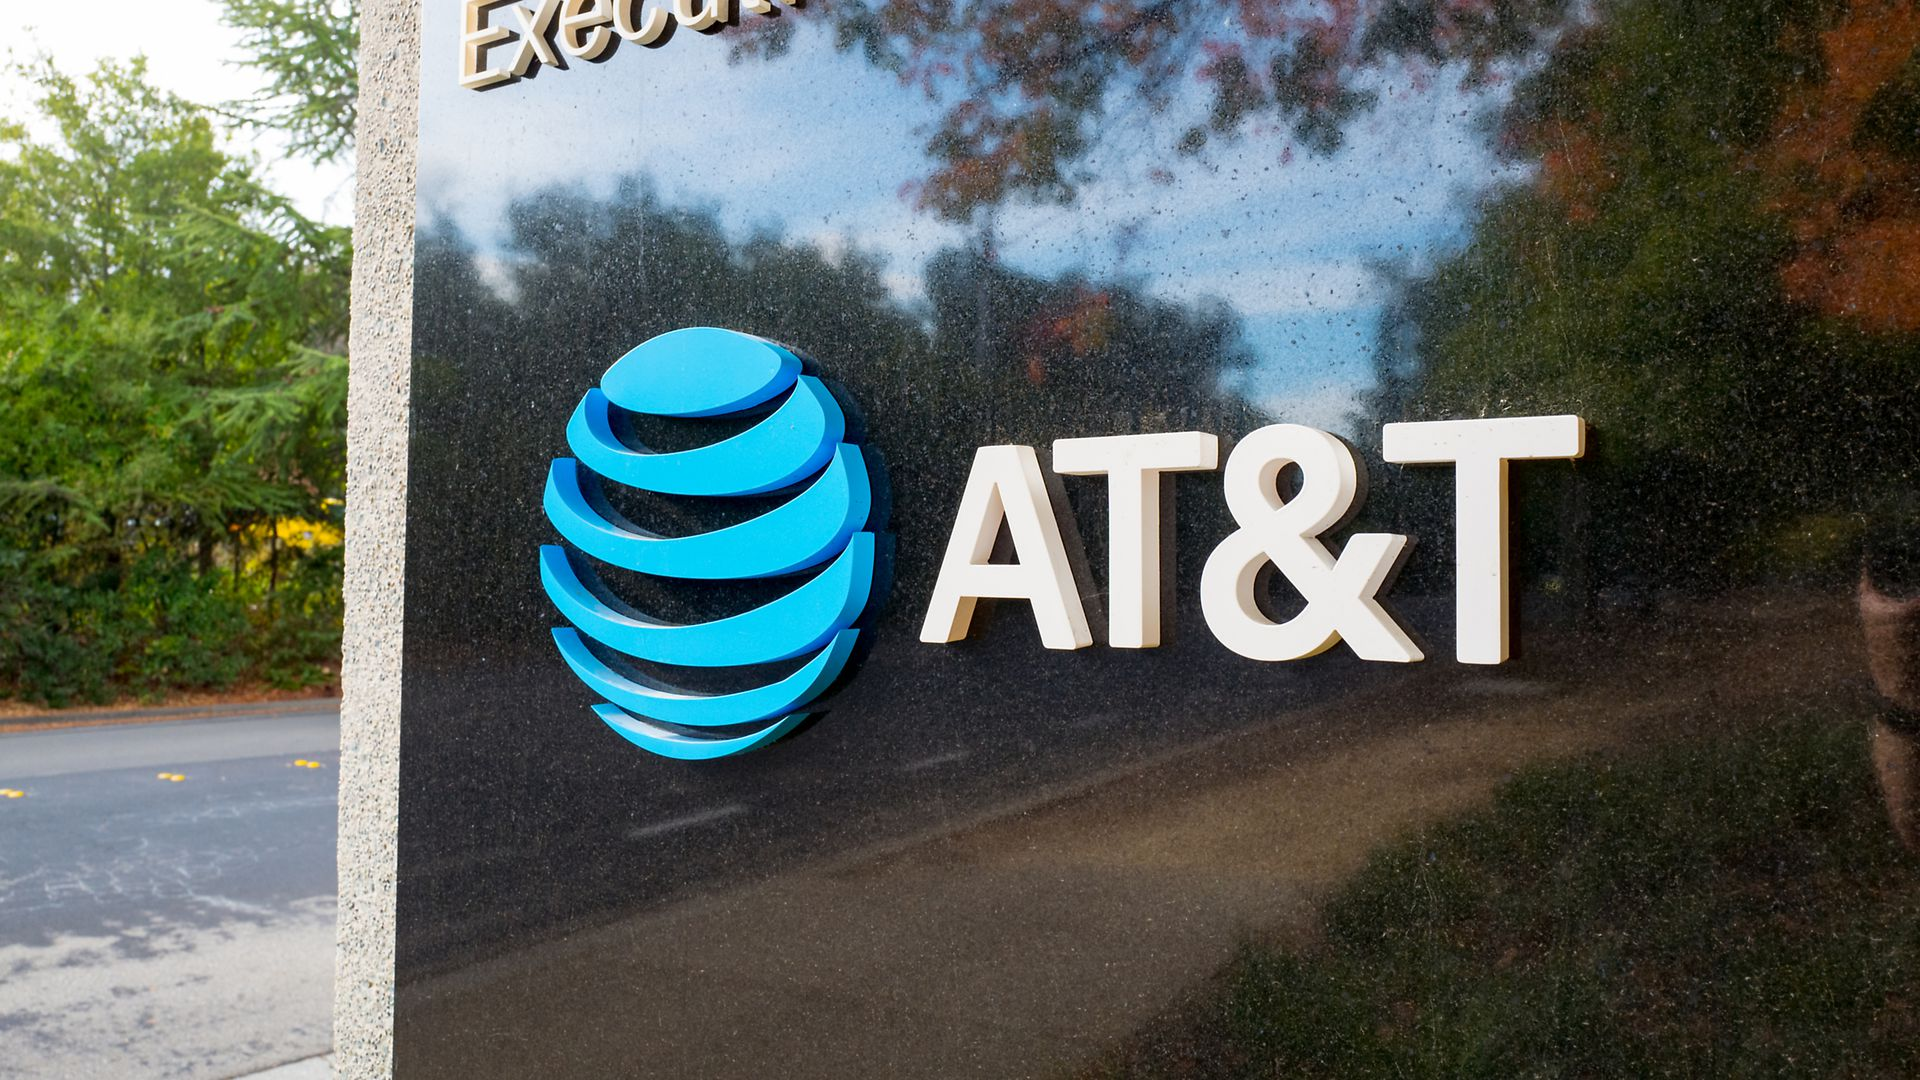 A sign with AT&T's logo